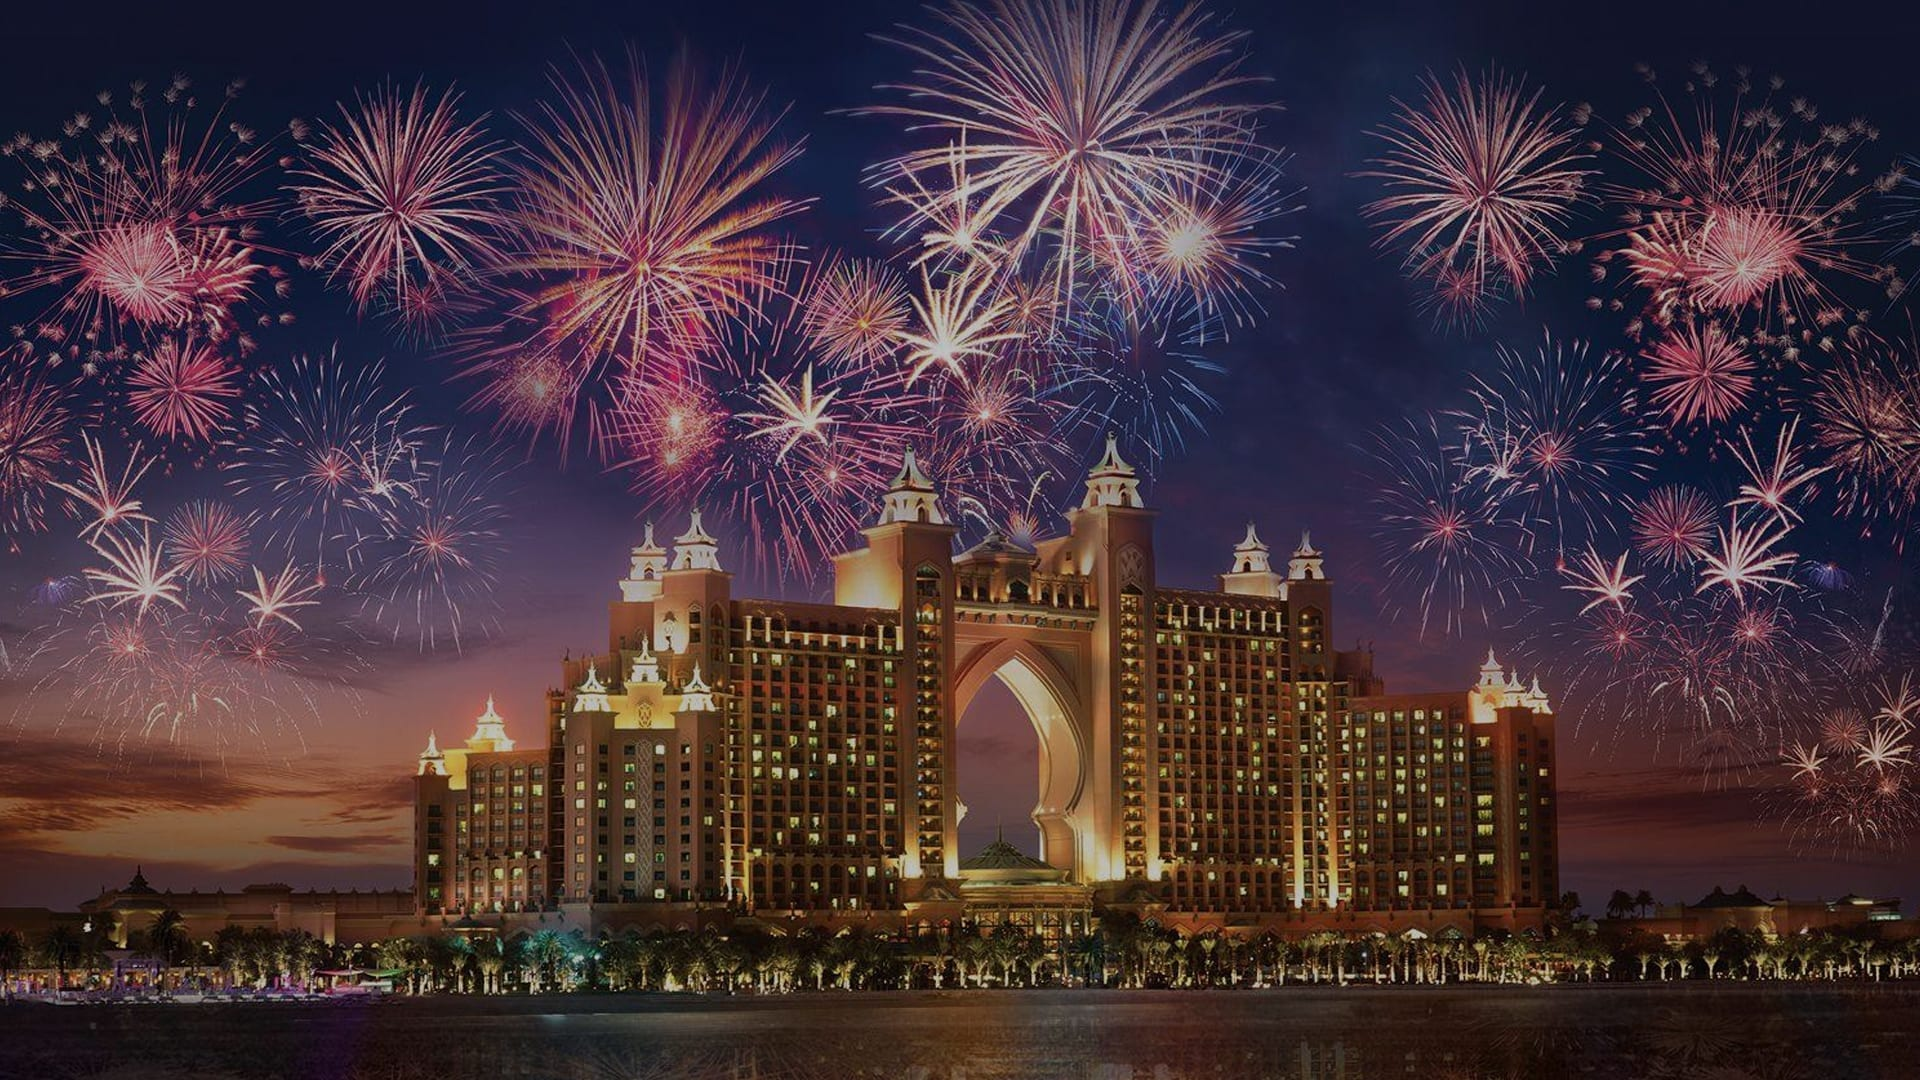 Where to see new year's fireworks in DXB 2019-2020?